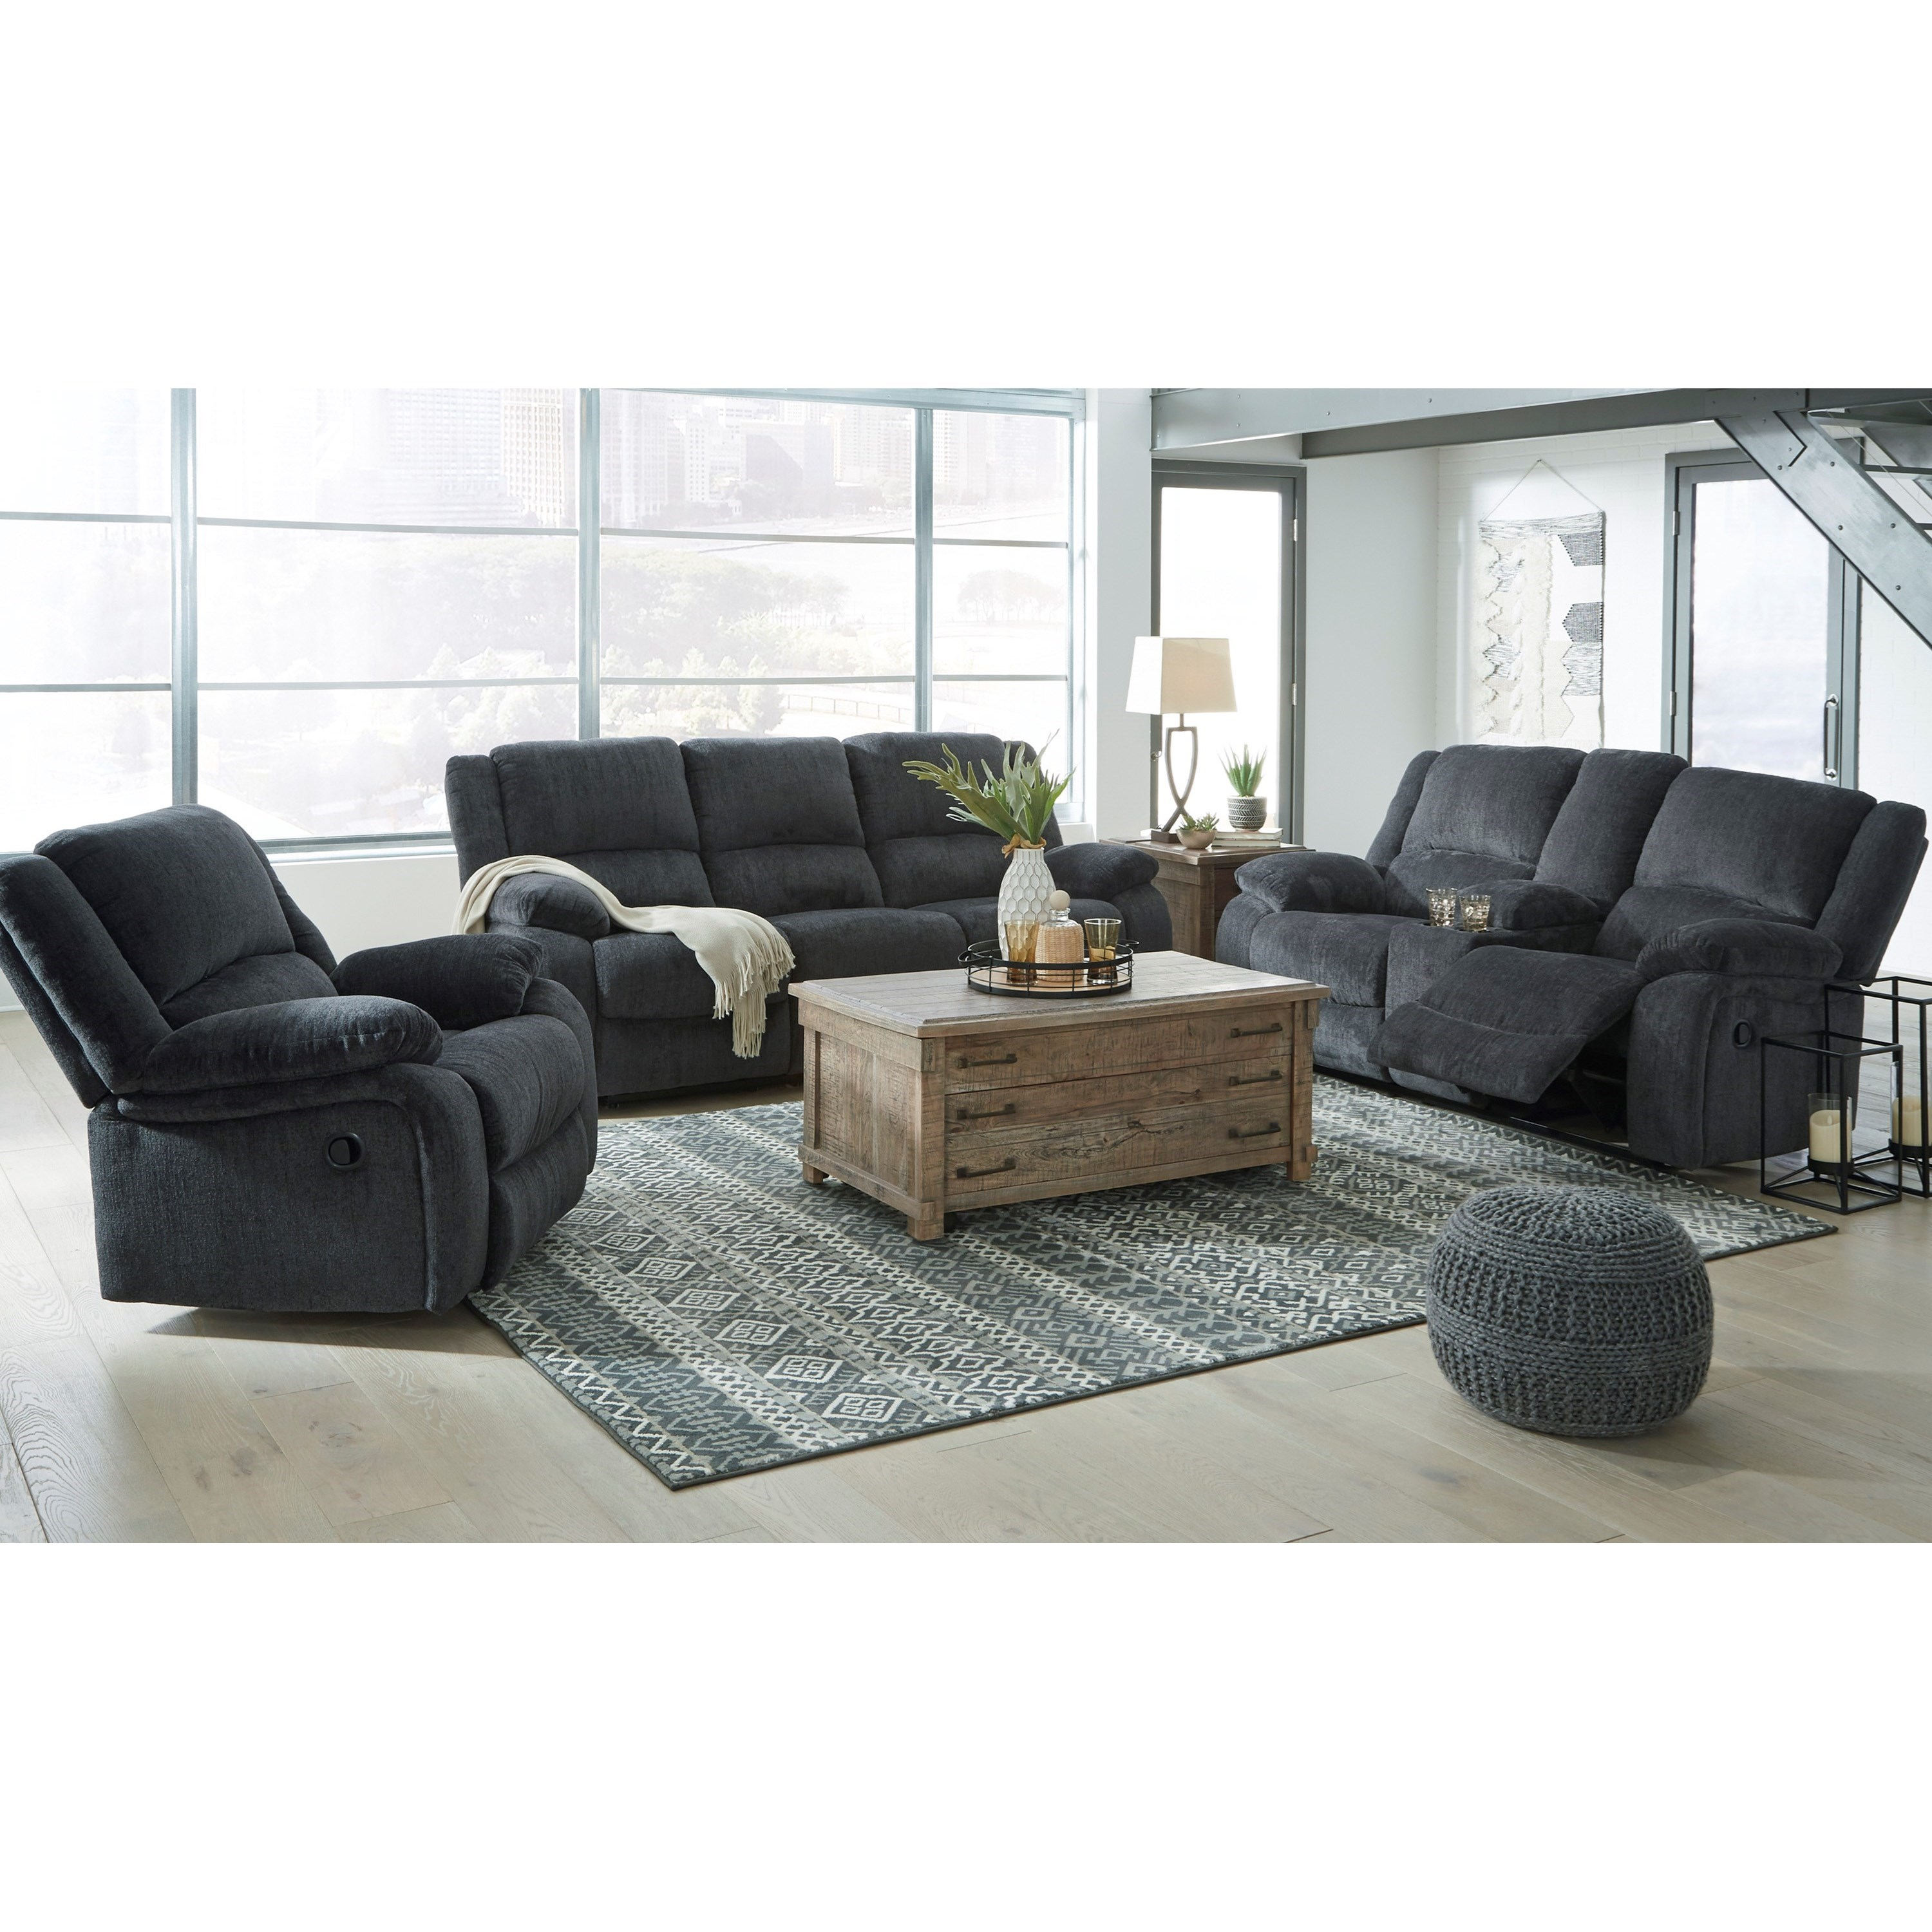 Draycoll Reclining Living Room Group by Signature Design by Ashley at Value City Furniture